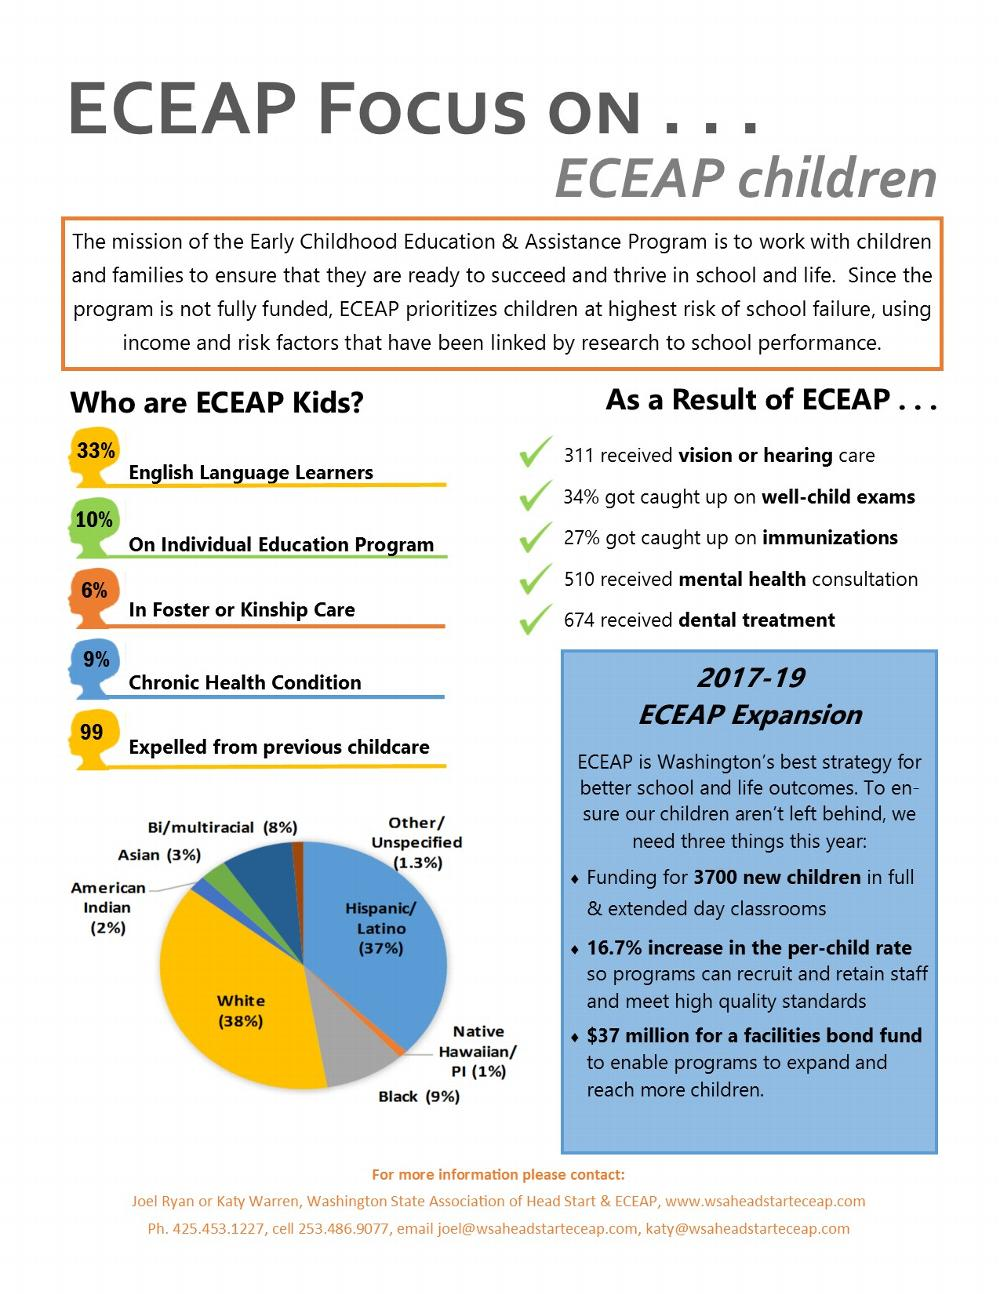 ECEAP Focus on Children